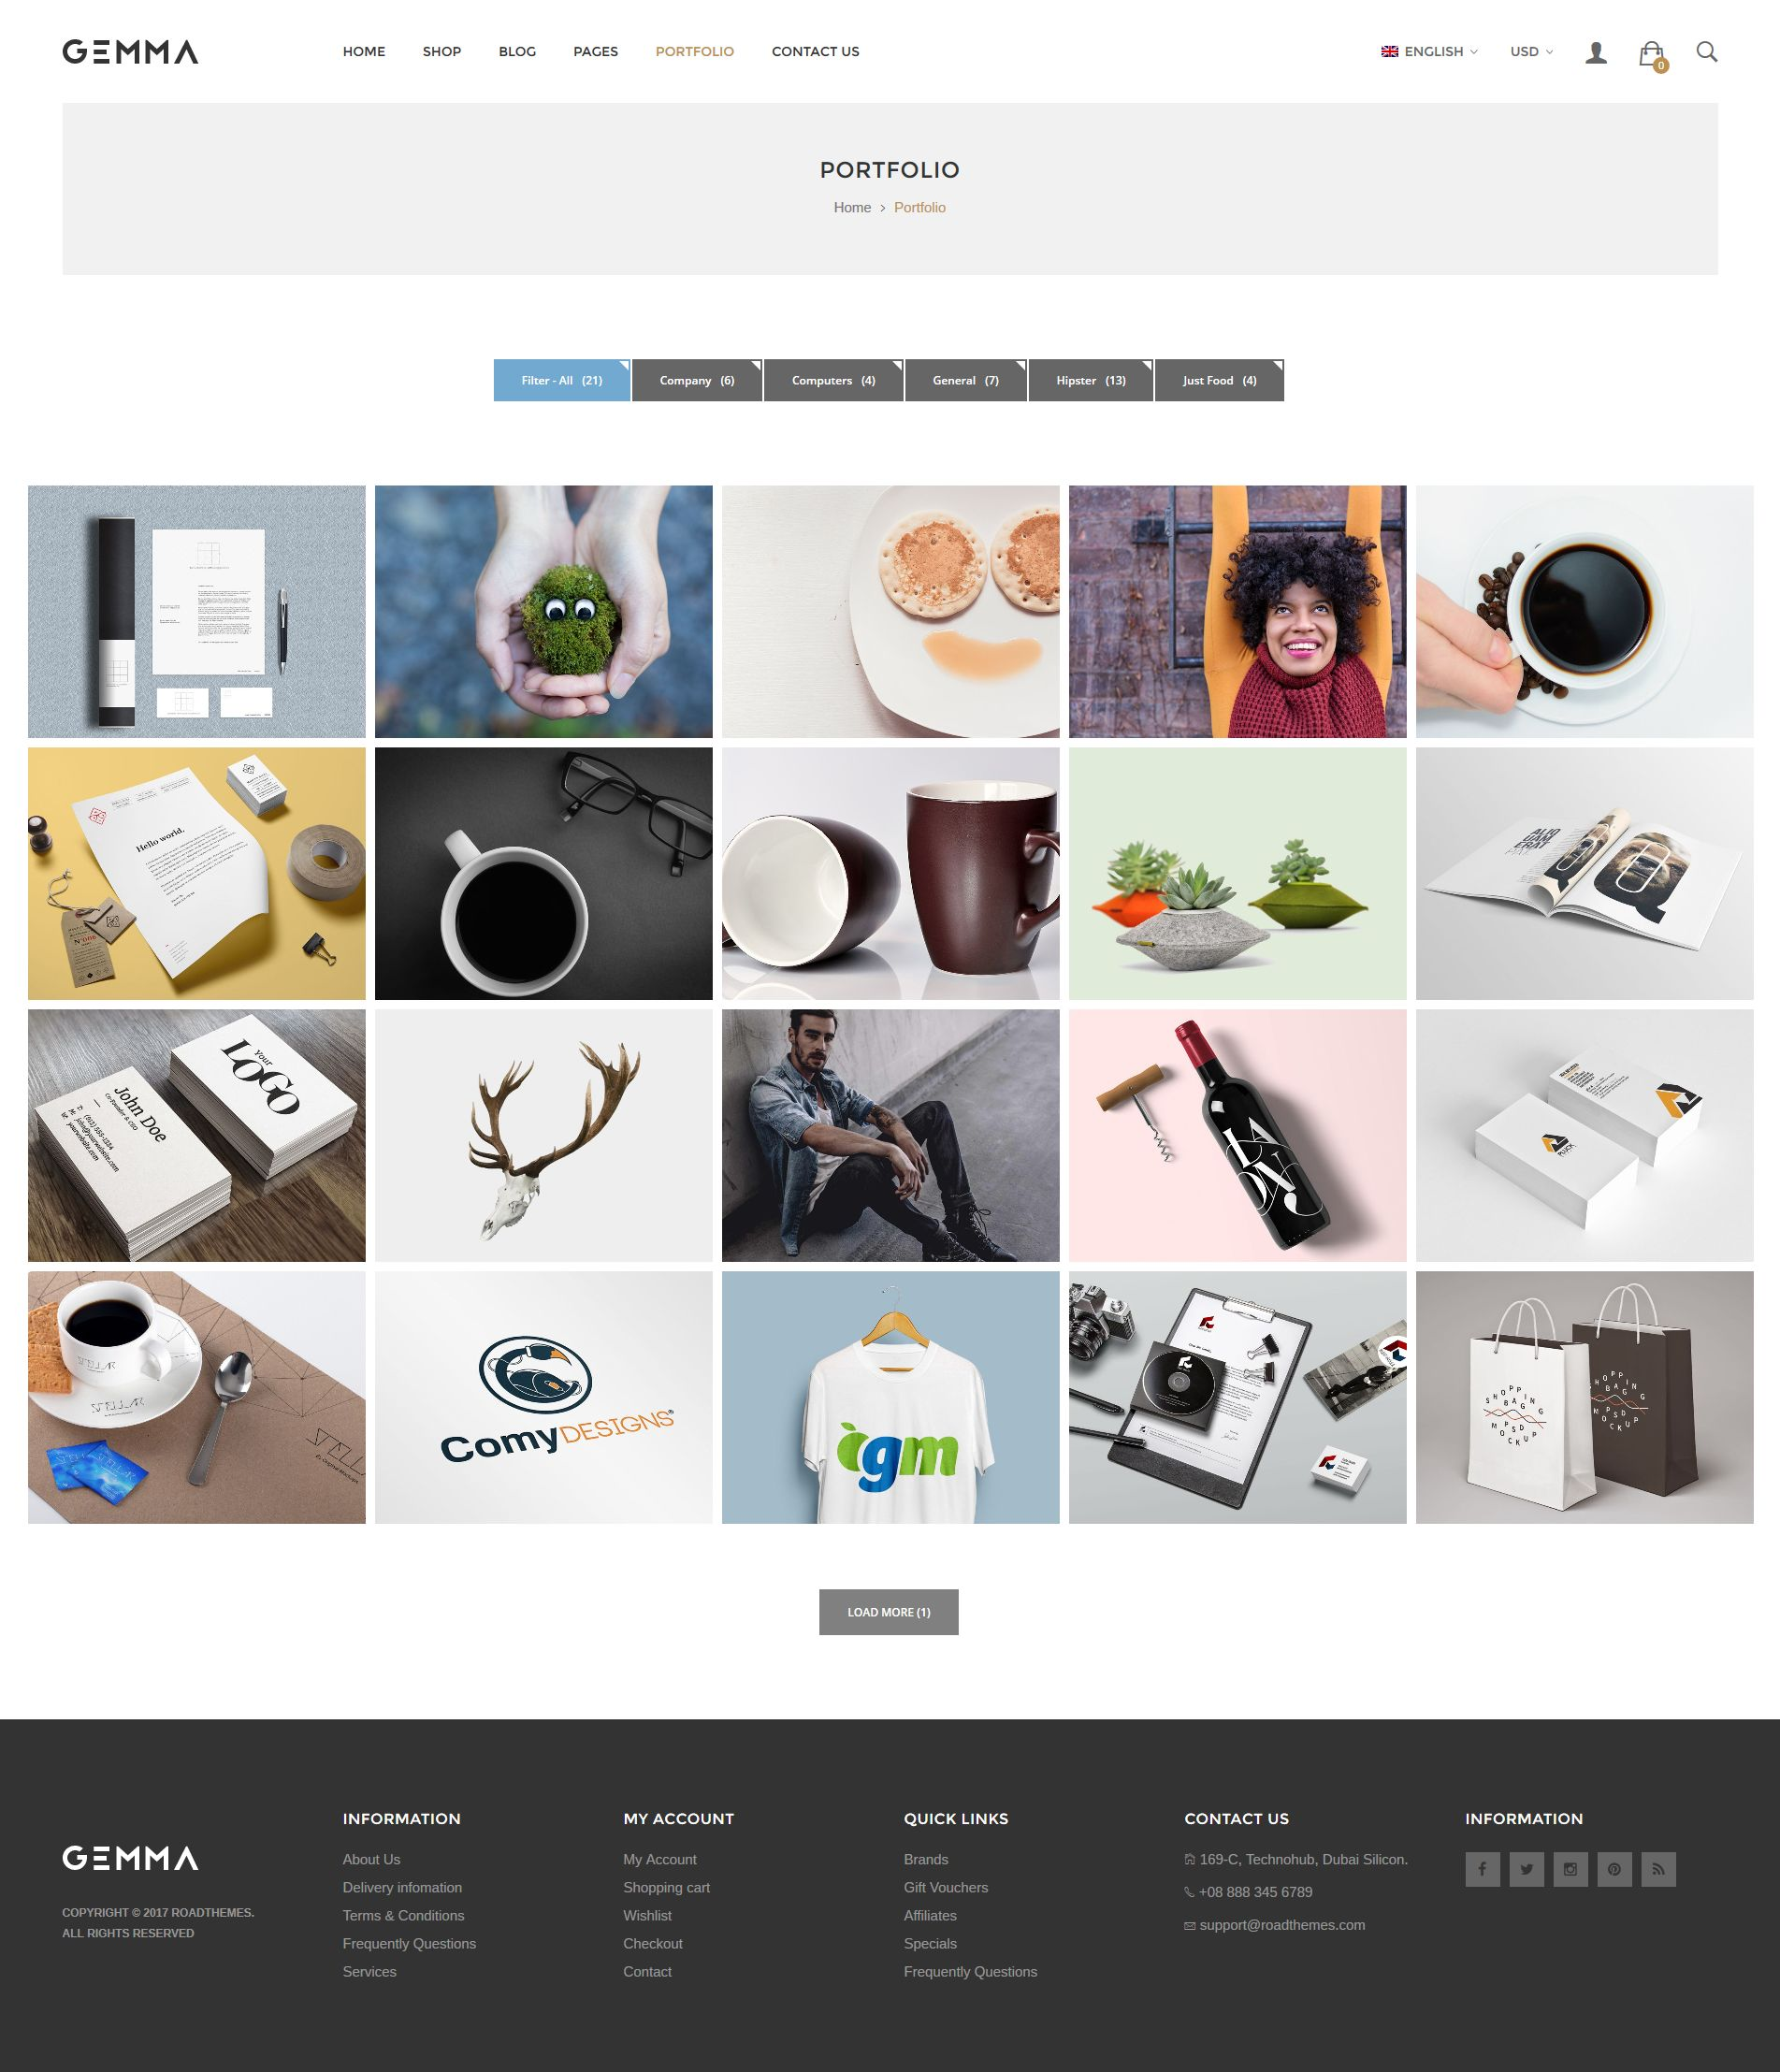 Copyright 169 2017 the design co all rights reserved - Gemma Multipurpose Woocommerce Wordpress Theme